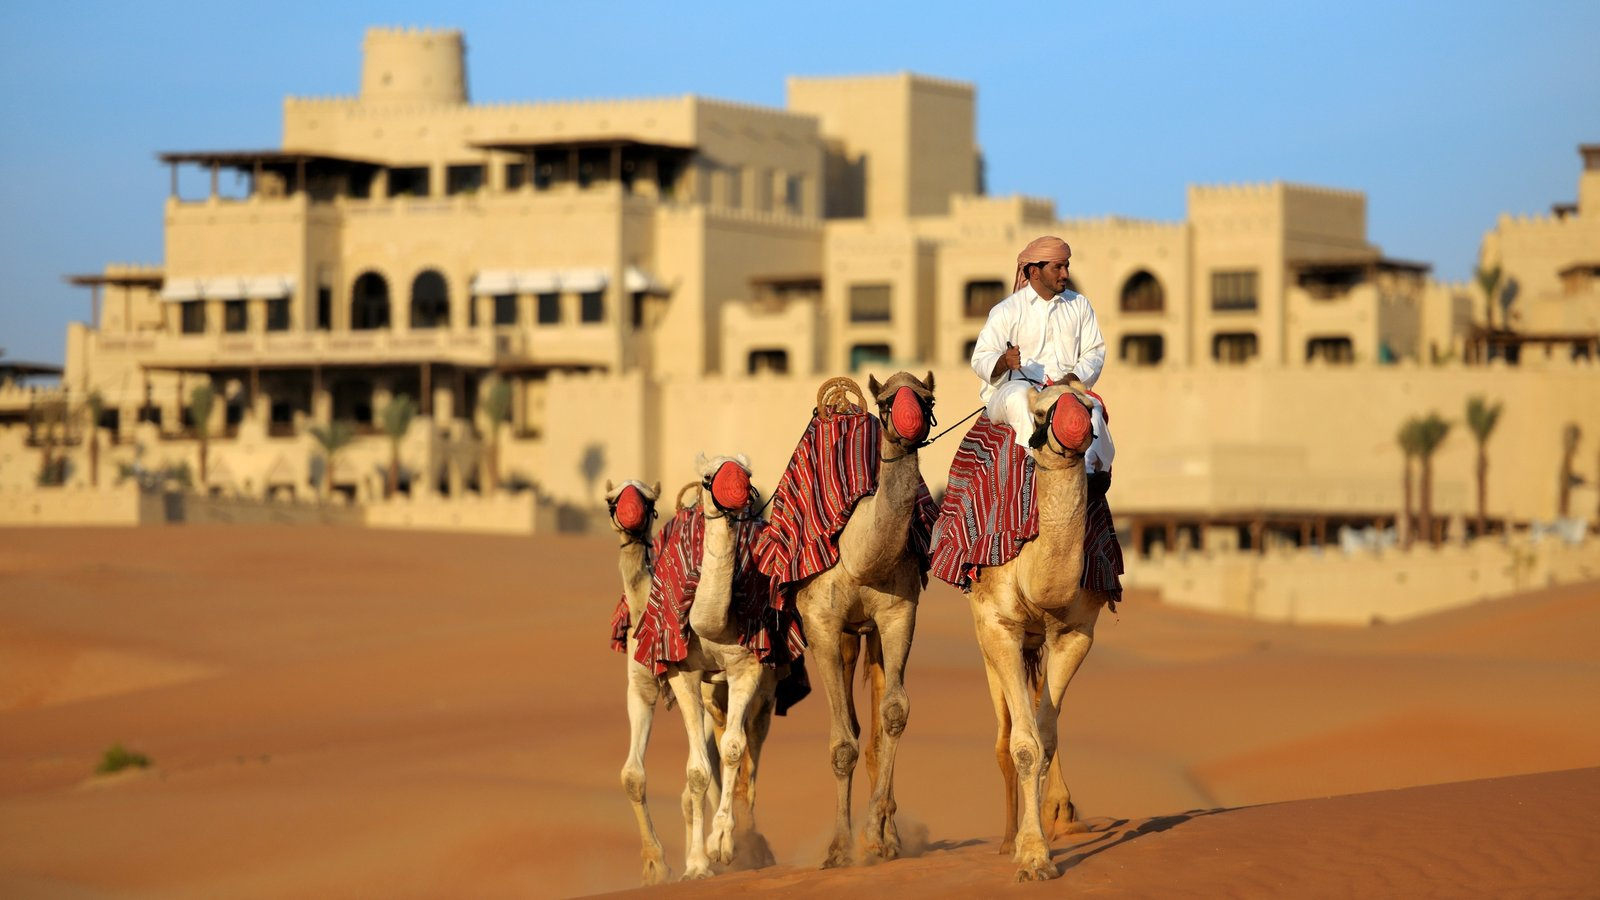 Yas Island which includes desert views and land animals as well as an individual male